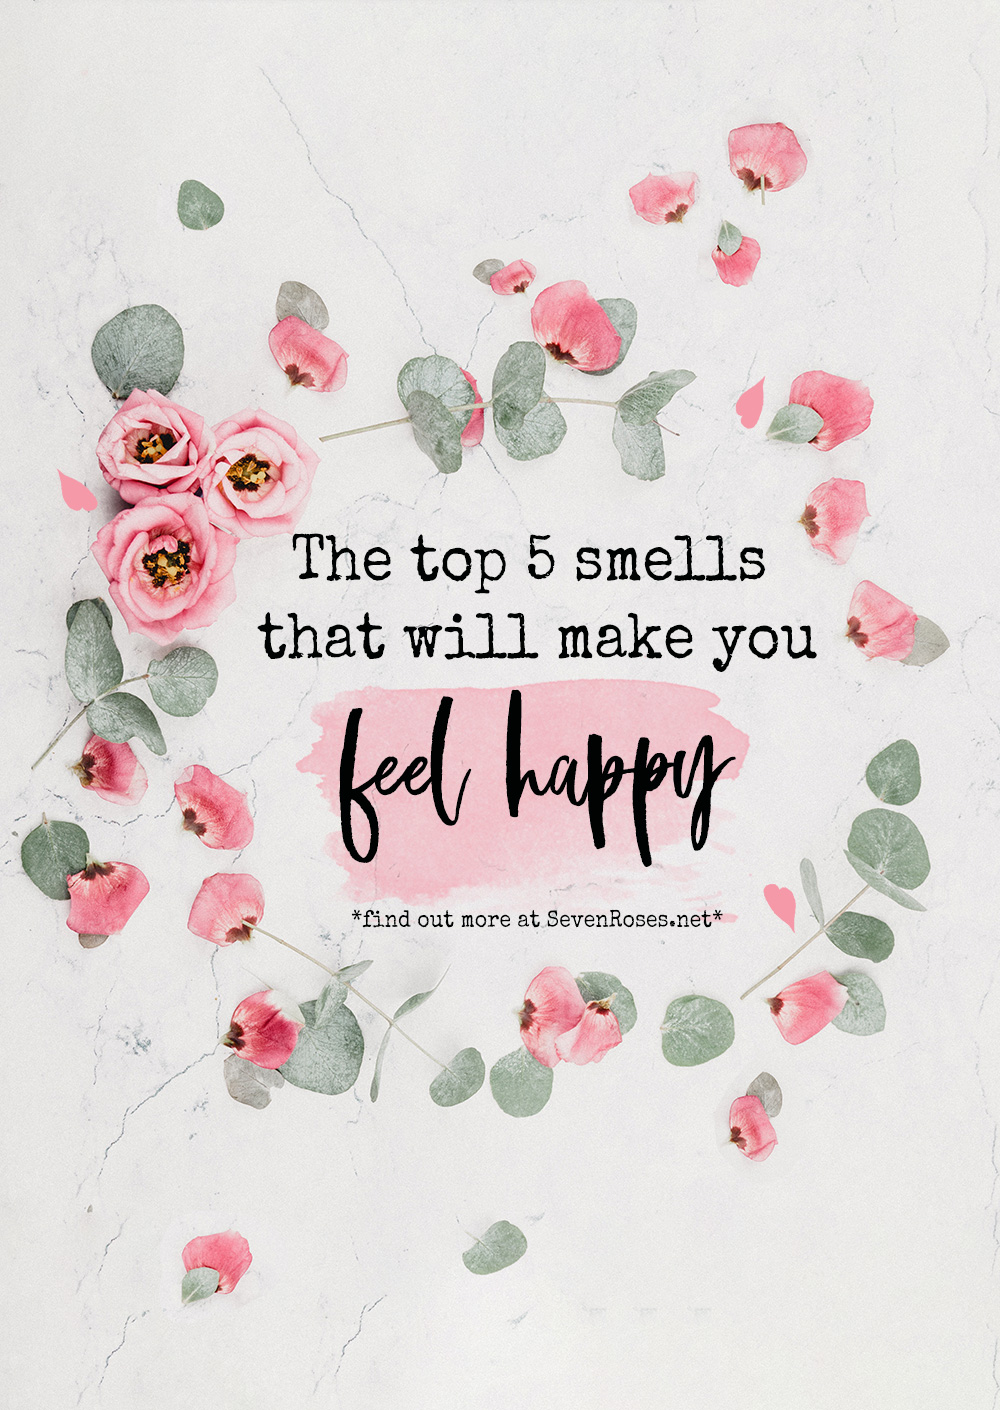 The top 5 smells that will make you feel happy